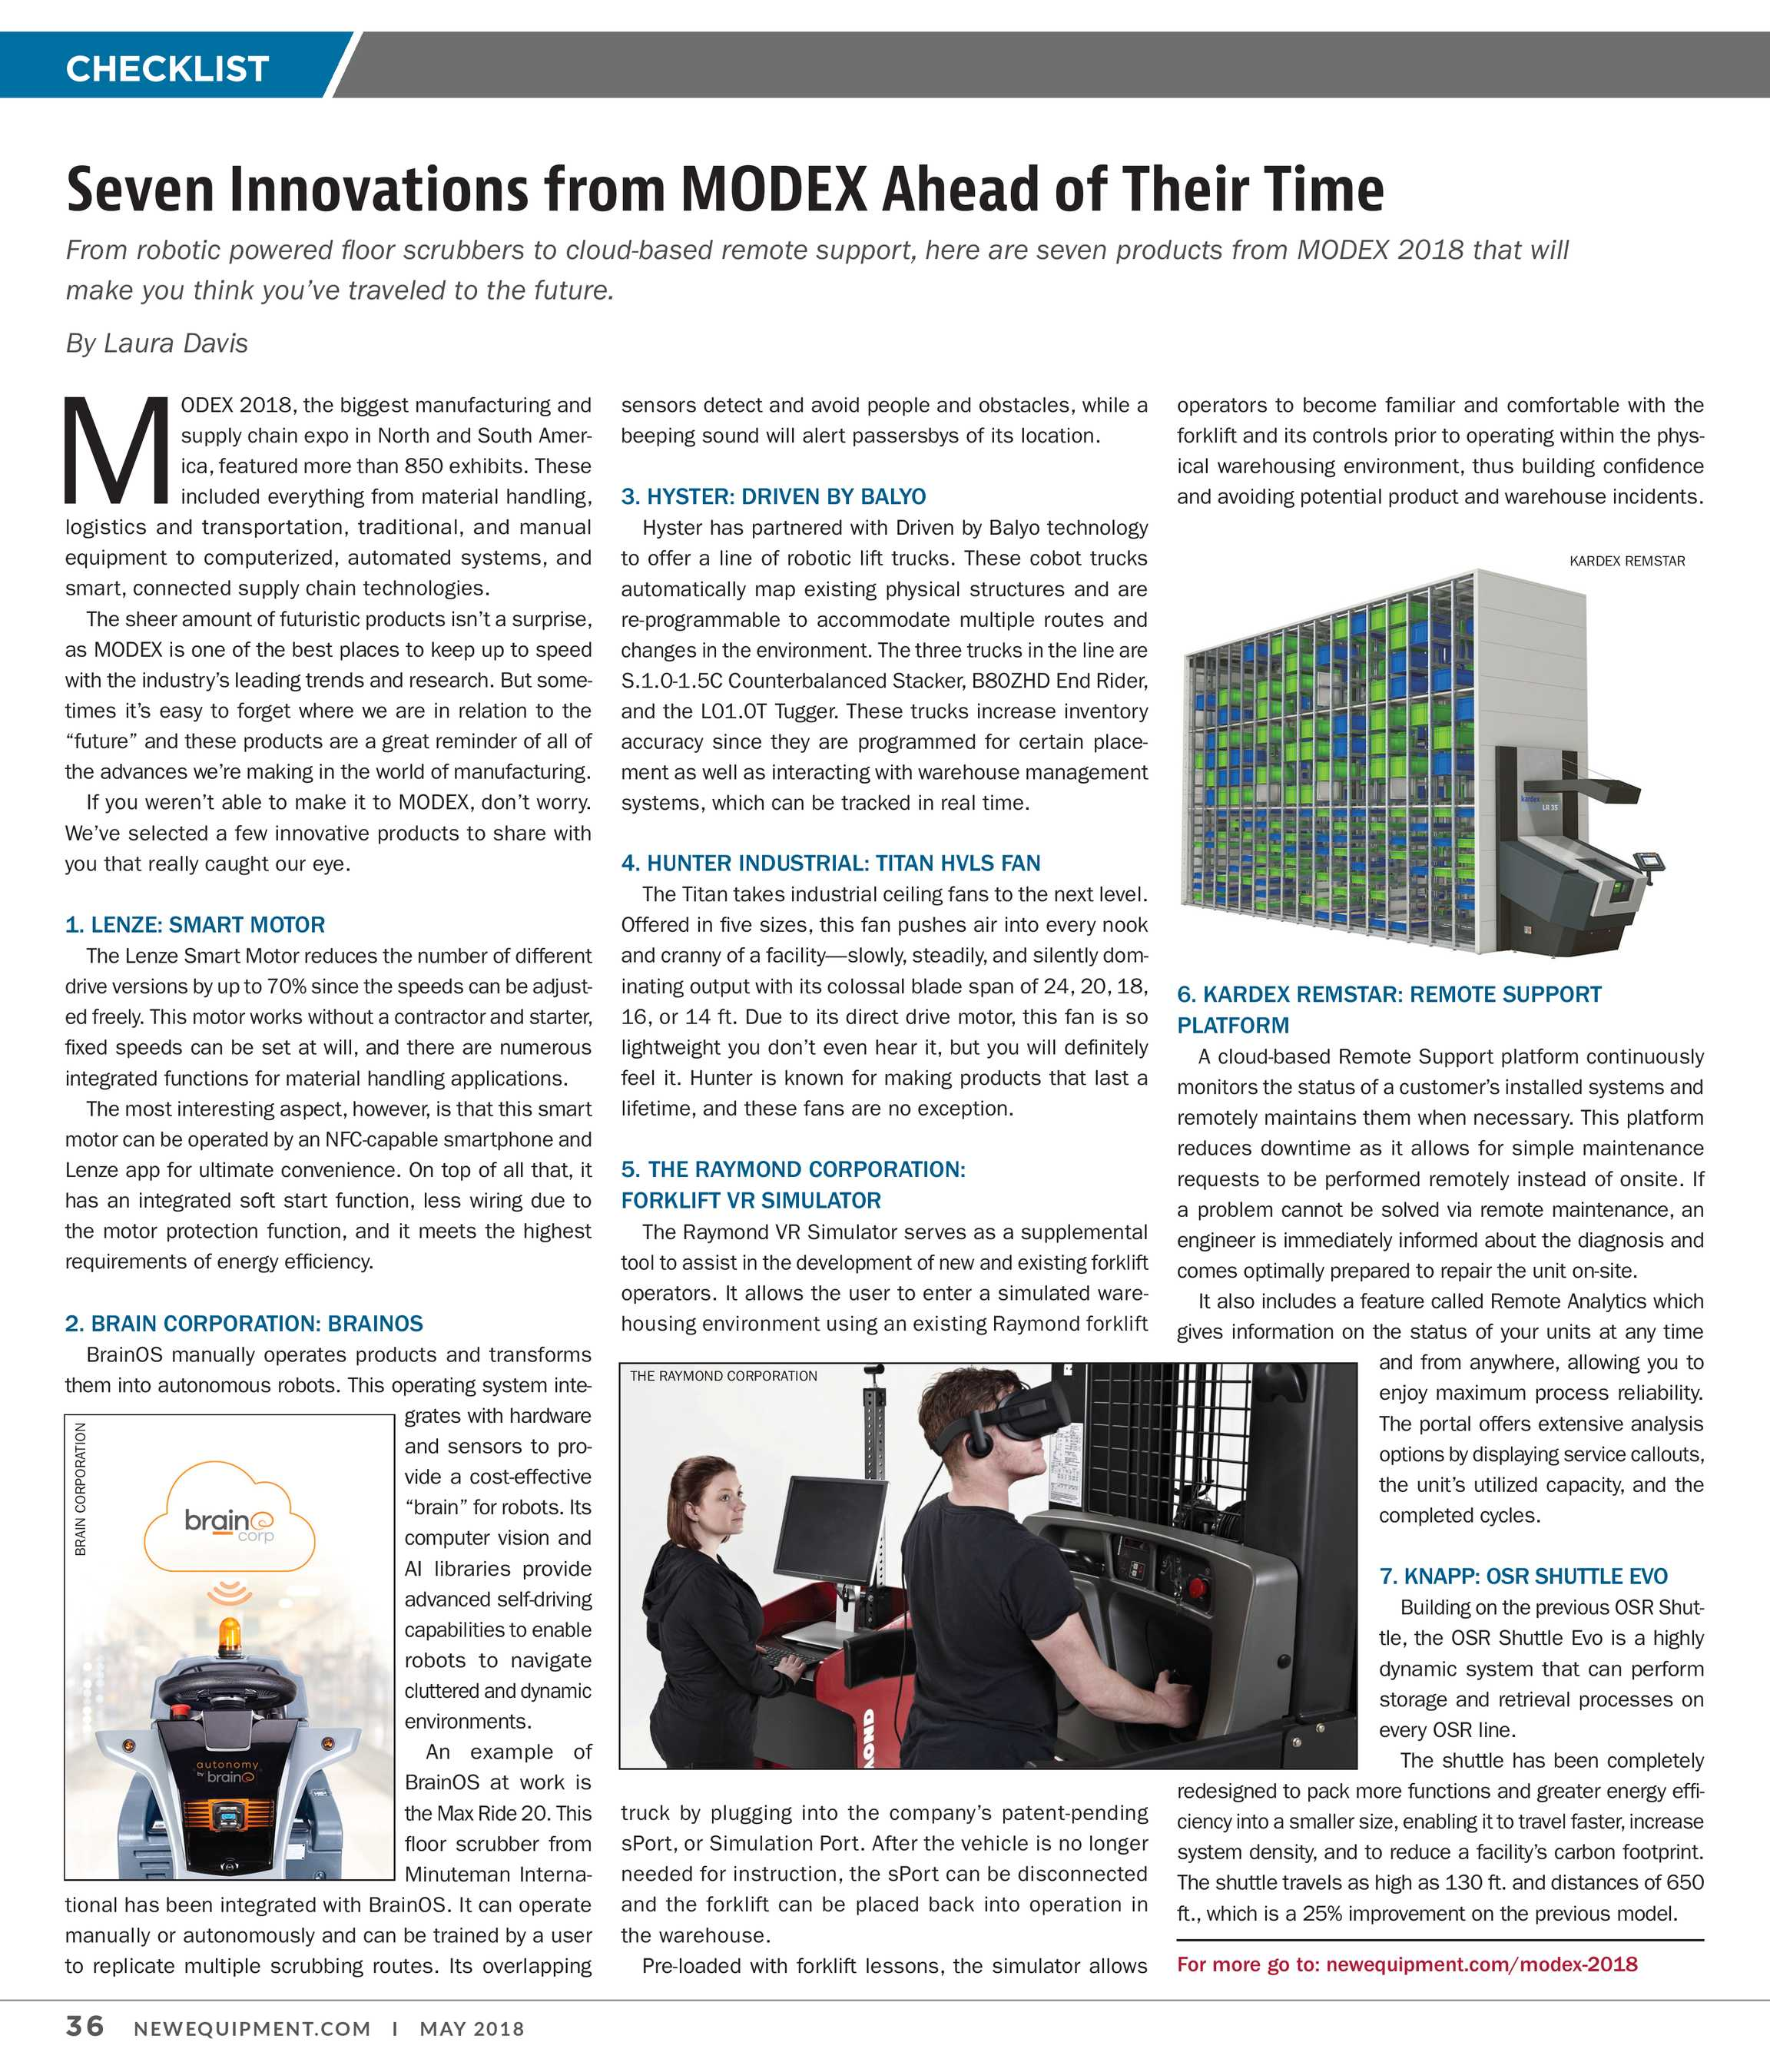 New Equipment Digest - May 2018 - page 36